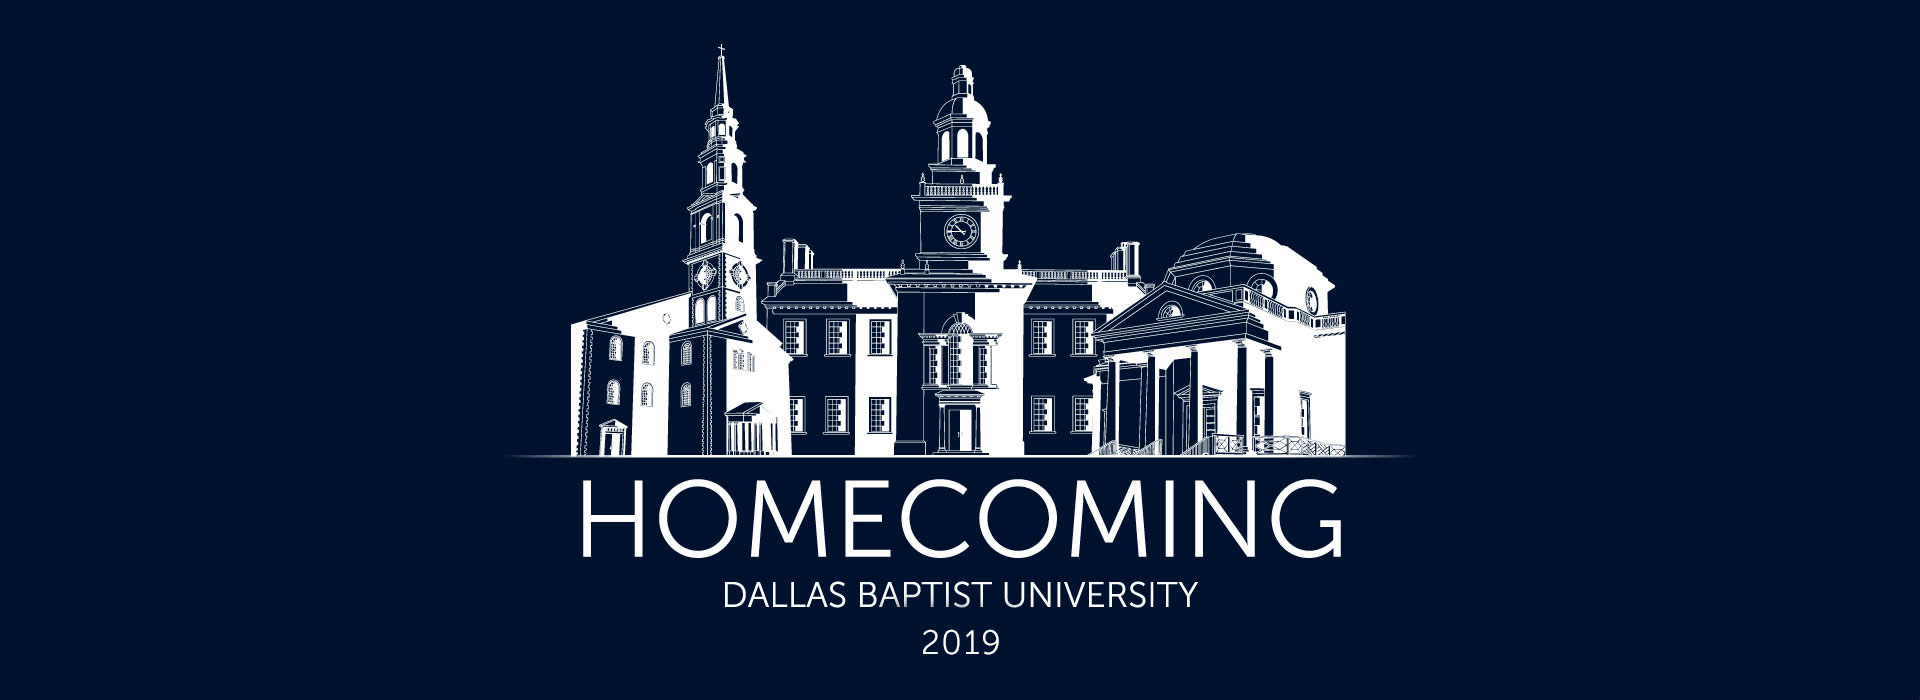 DBU Homecoming 2019 Banner